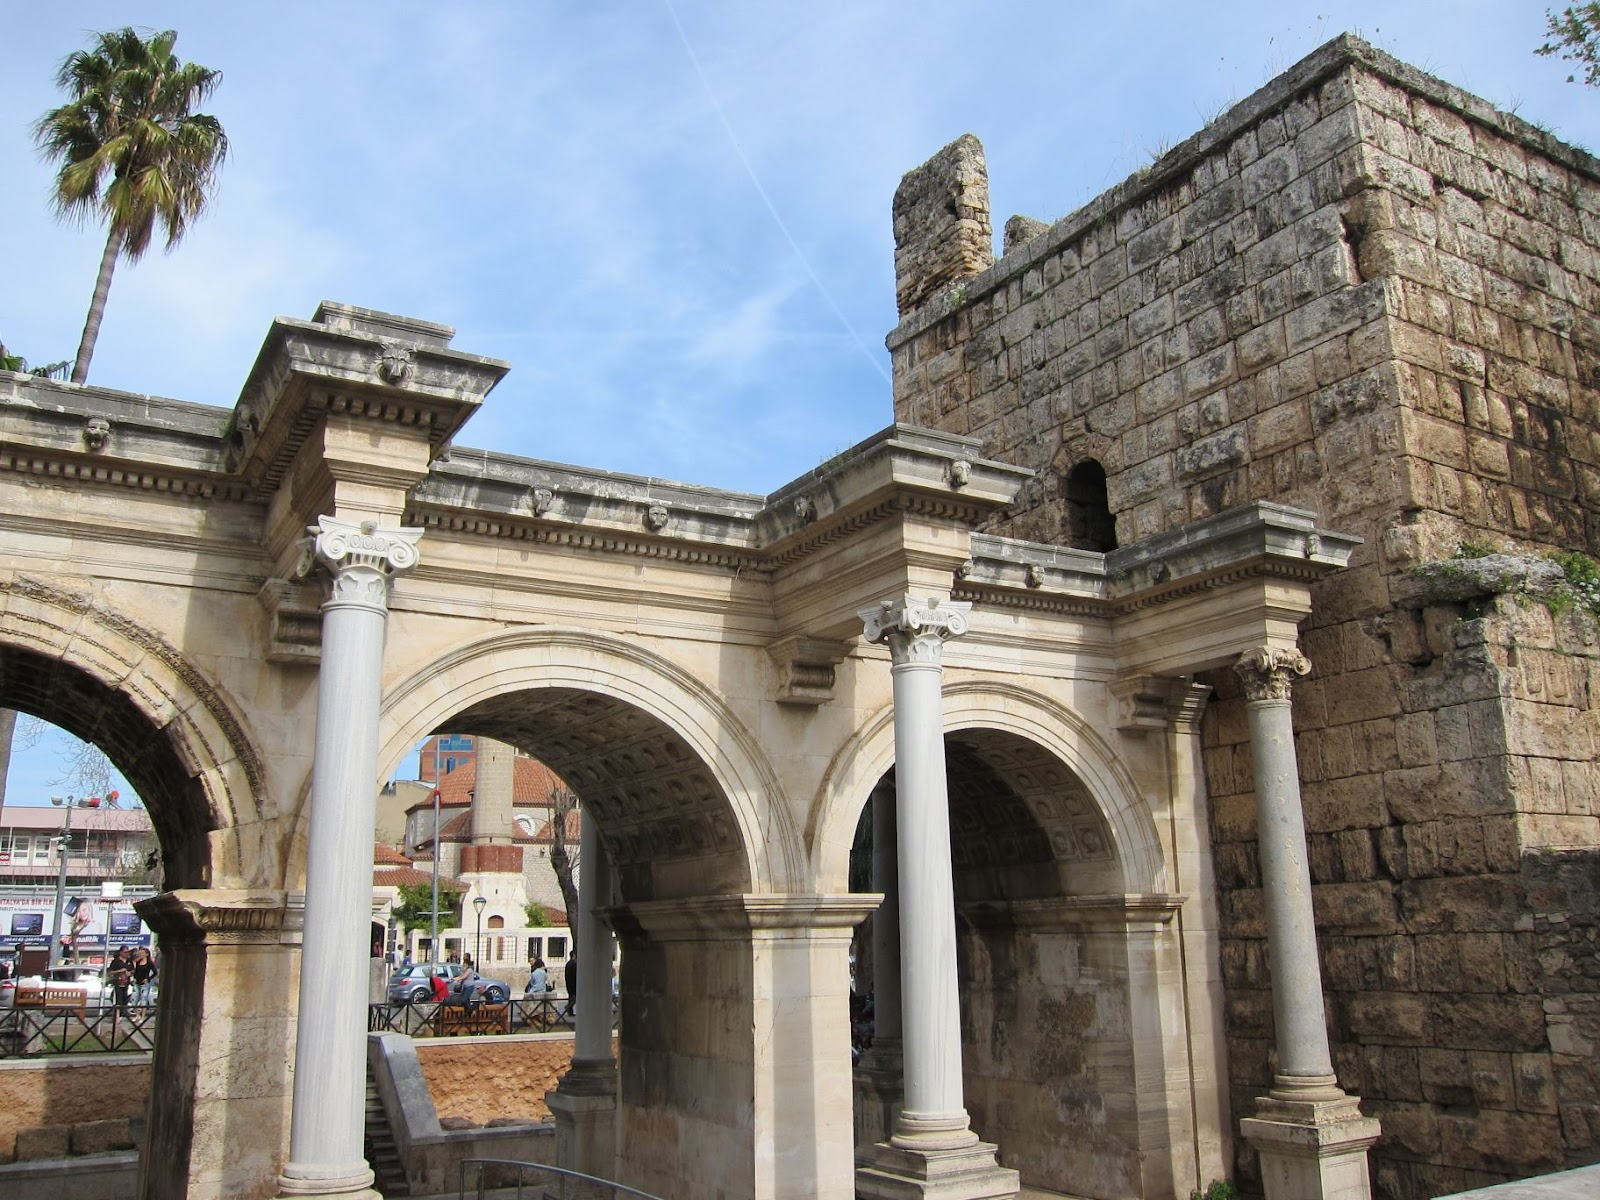 Worldtour 2011 - 2012: 24th-25th March: Travel to Antalya and wandering aroun...